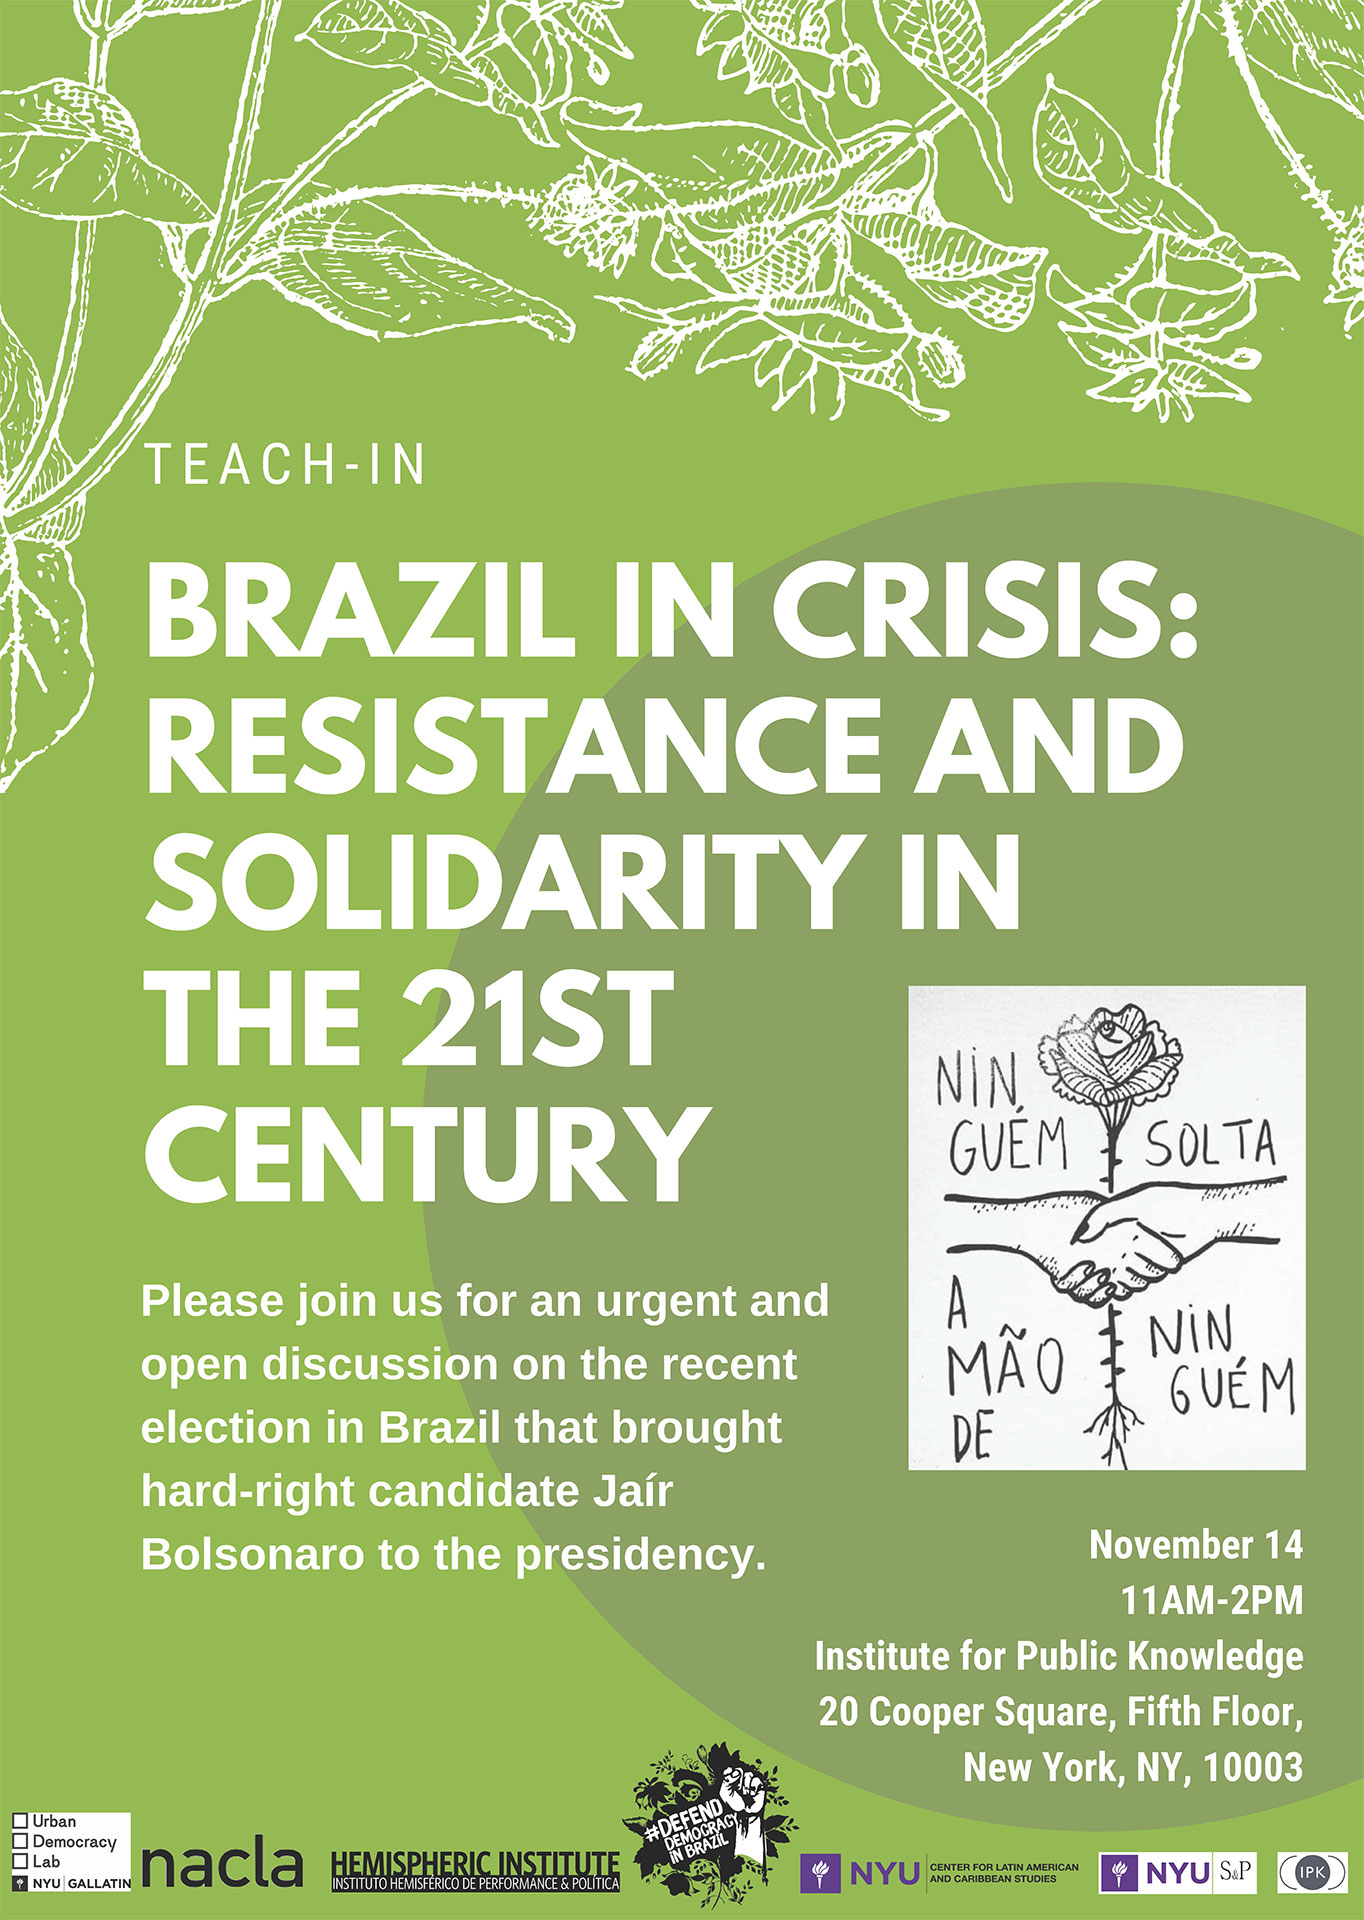 Brazil in Crisis: Resistance and Solidarity in the 21st Century (Teach-in)